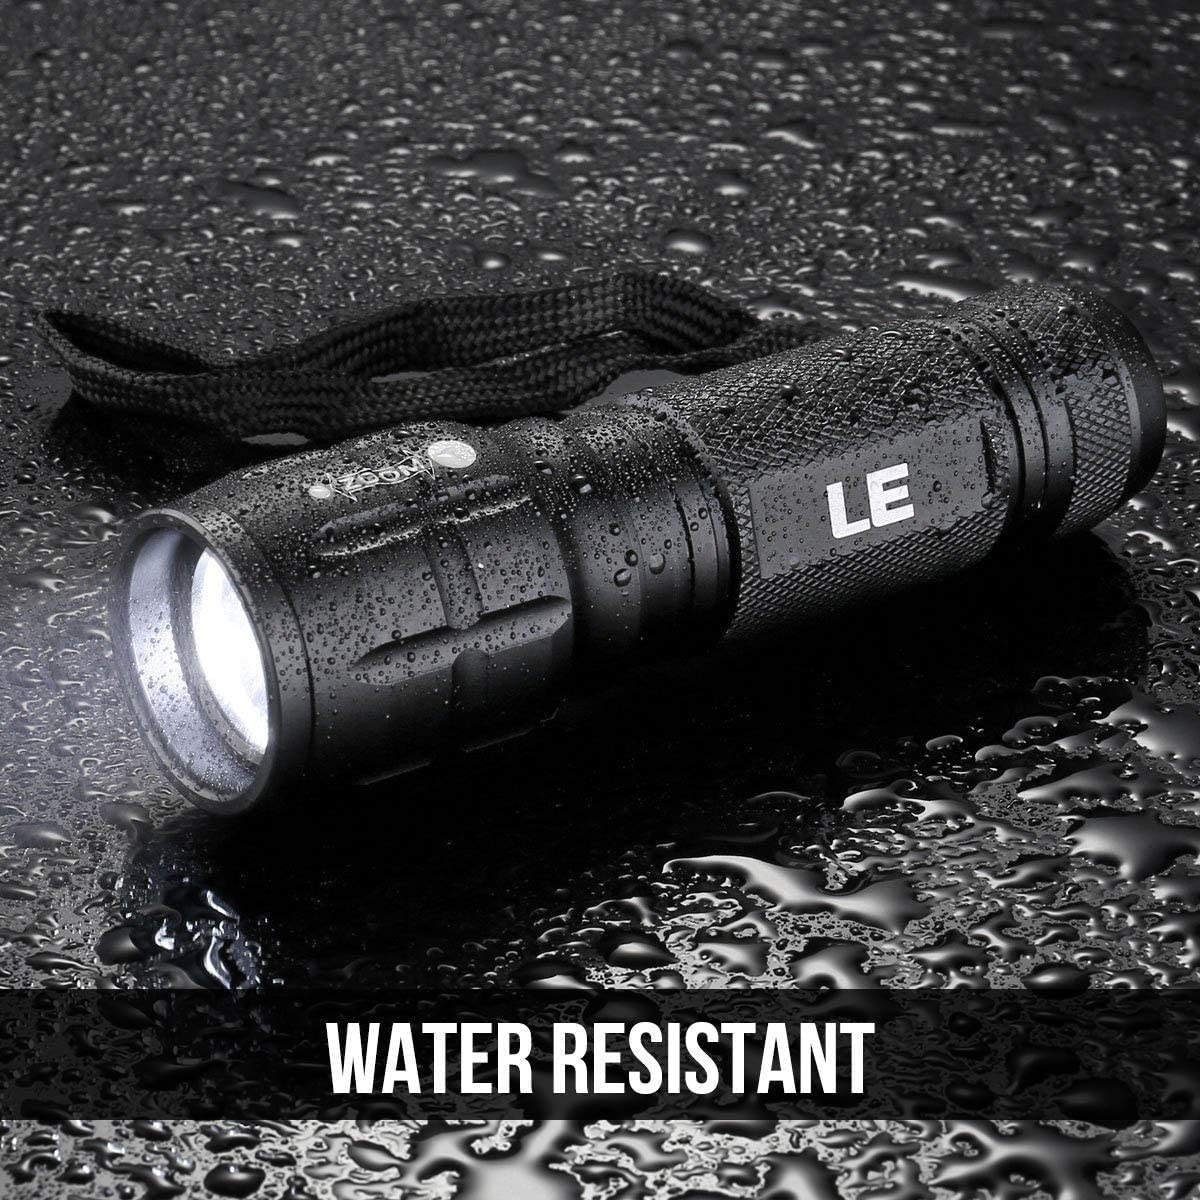 LE CREE LED Flashlight, Small and Super Bright LED Tactical Torch, Handheld Flash Light, Zoomable, Water Resistant, Adjustable Brightness for Camping, Running, AAA Batteries Included - Basic Handheld Flashlights -